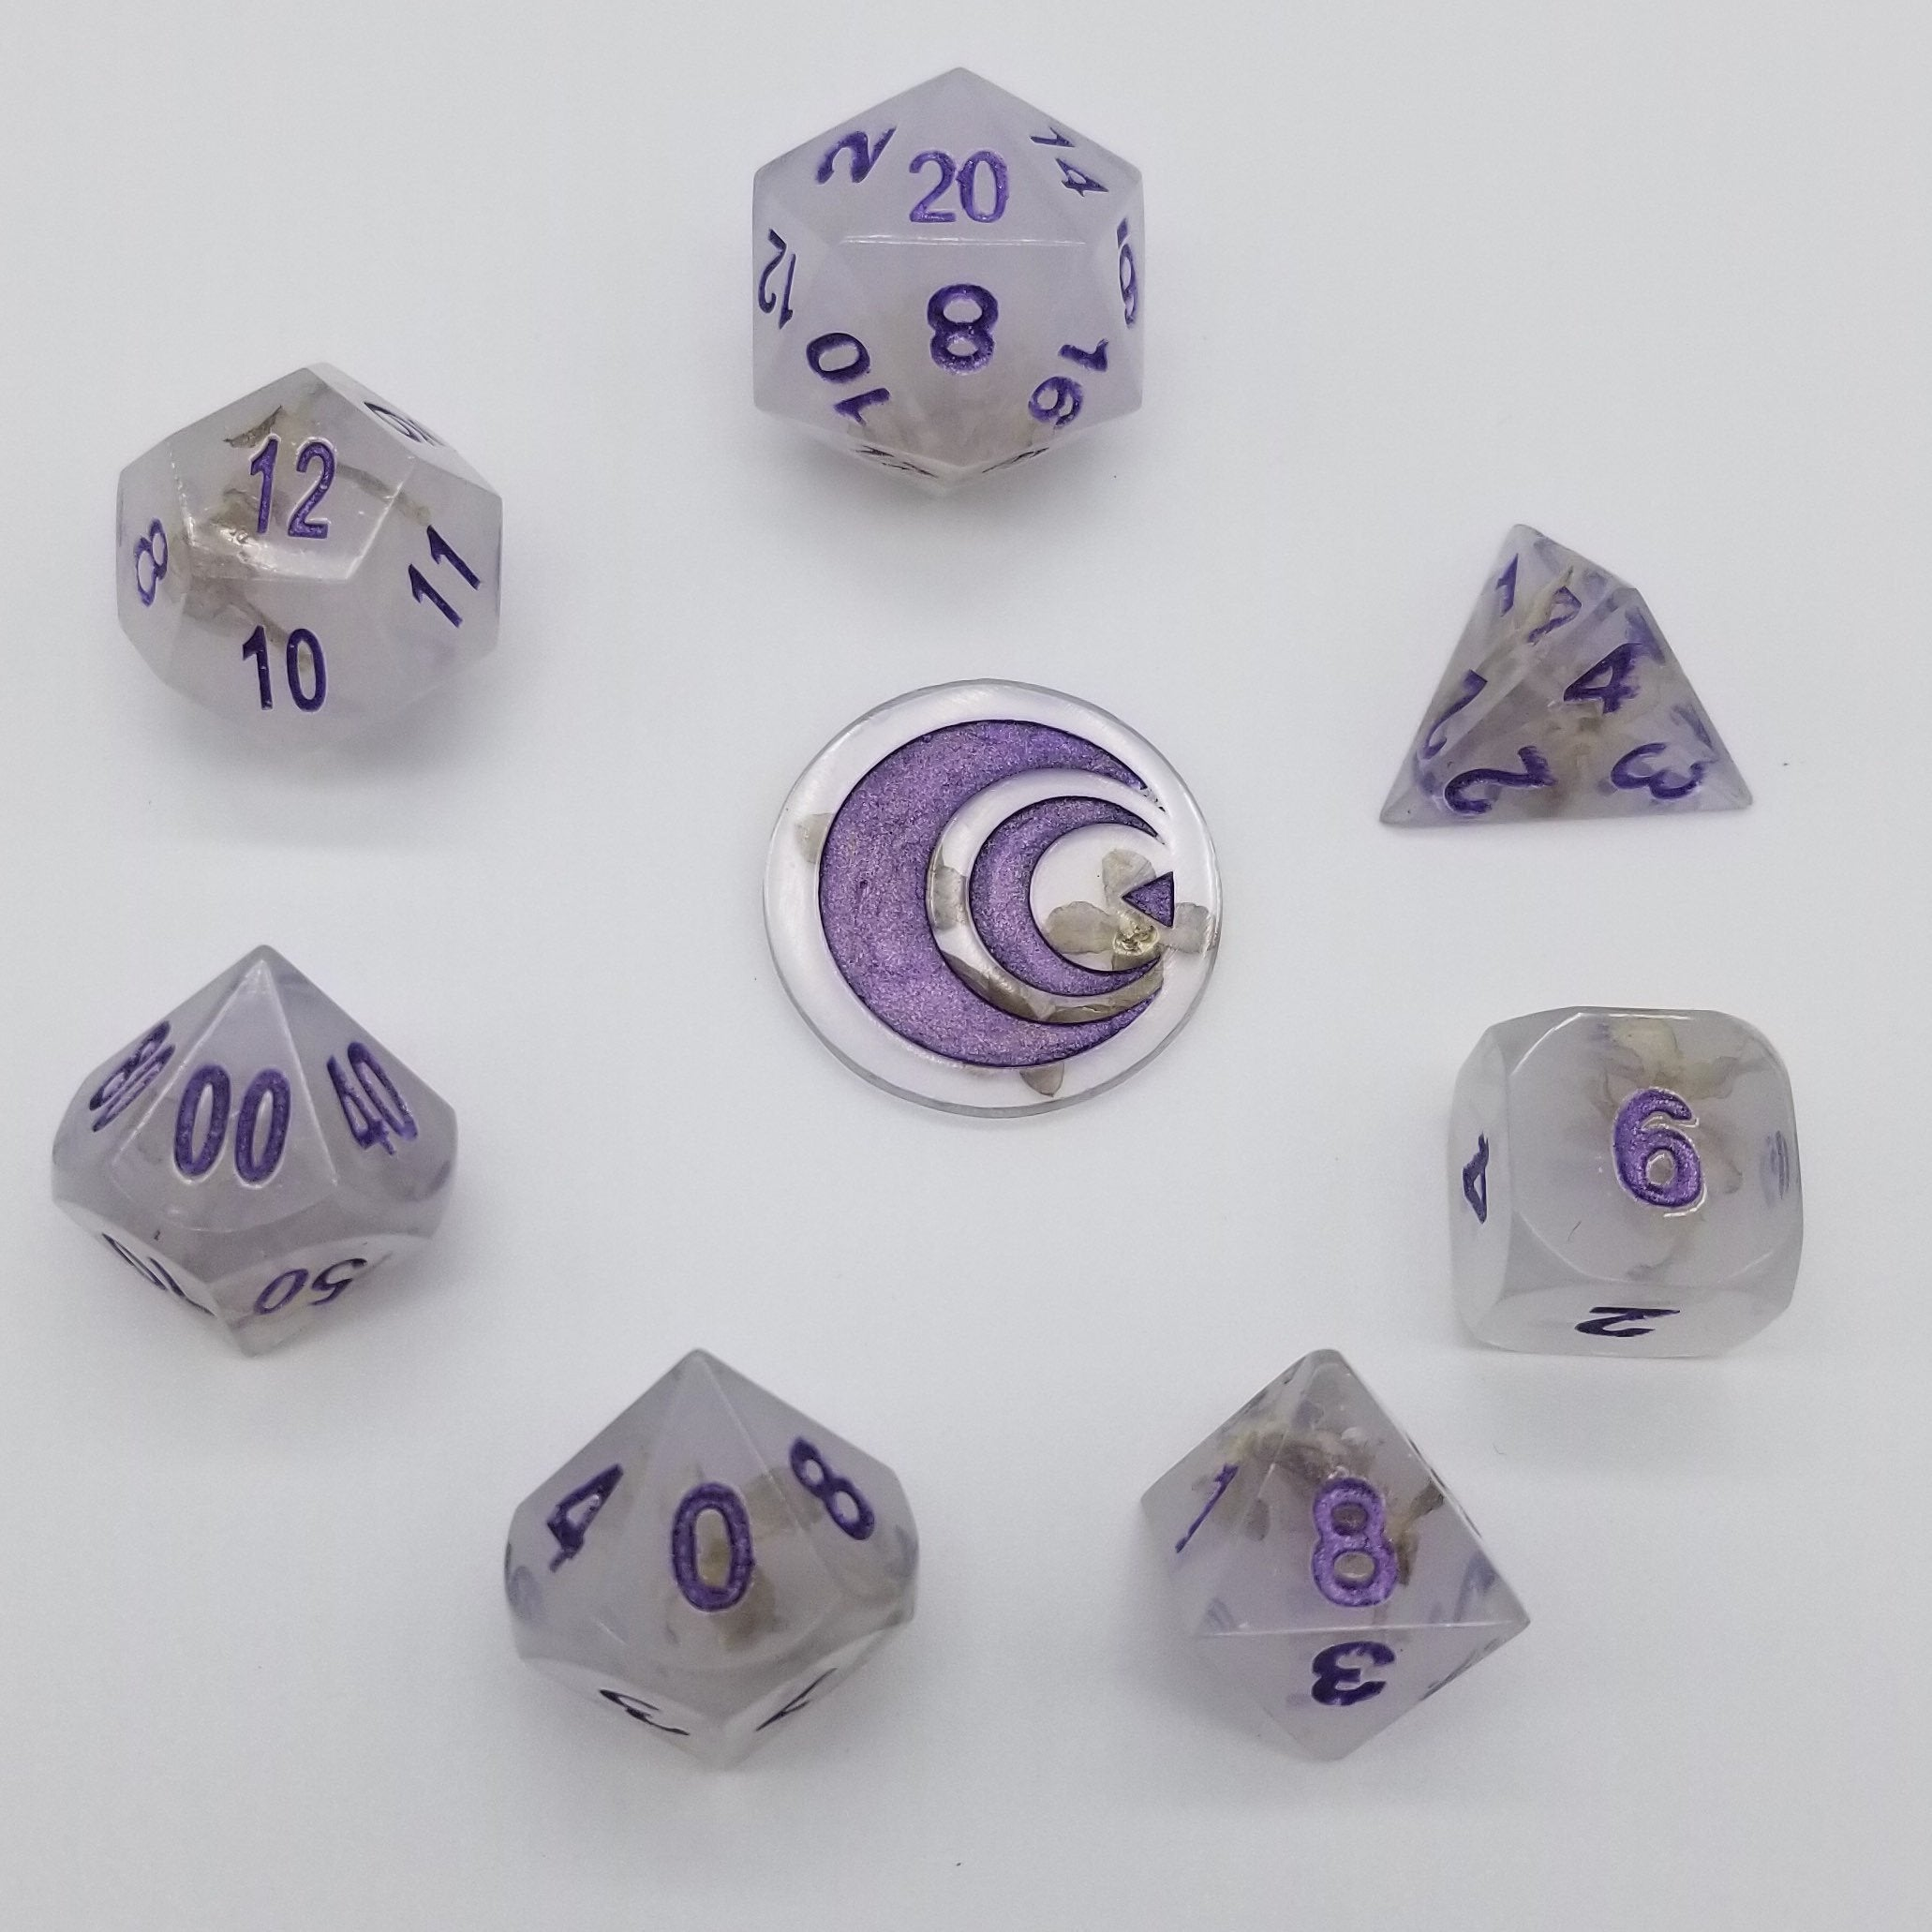 Semi-opaque handmade resin dice with lilac flowers embedded inside and purple ink.